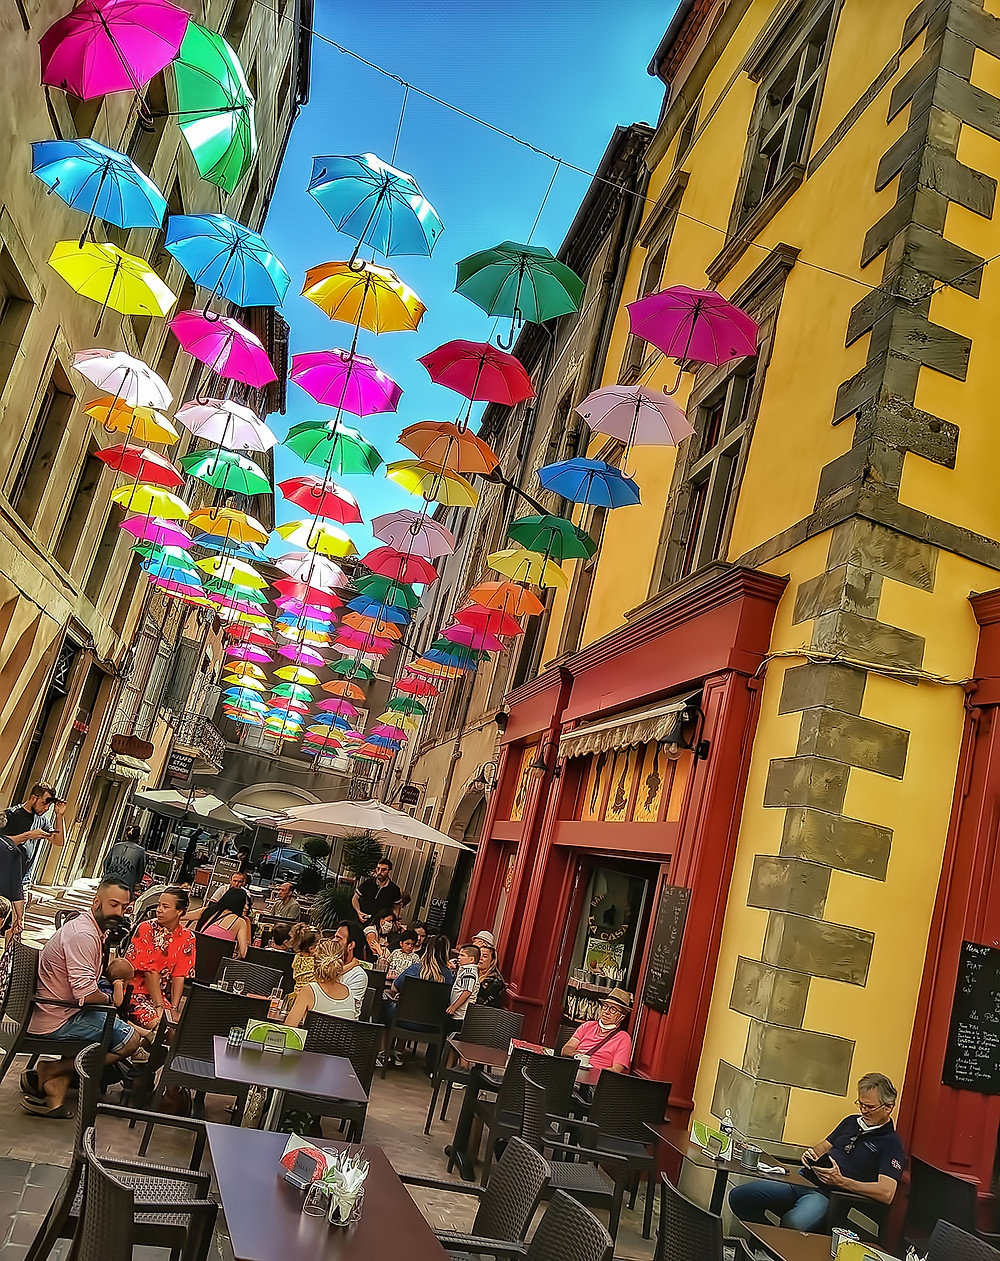 The overhead summer umbrellas in La Bastide Saint-Louis of Carcassonne, France